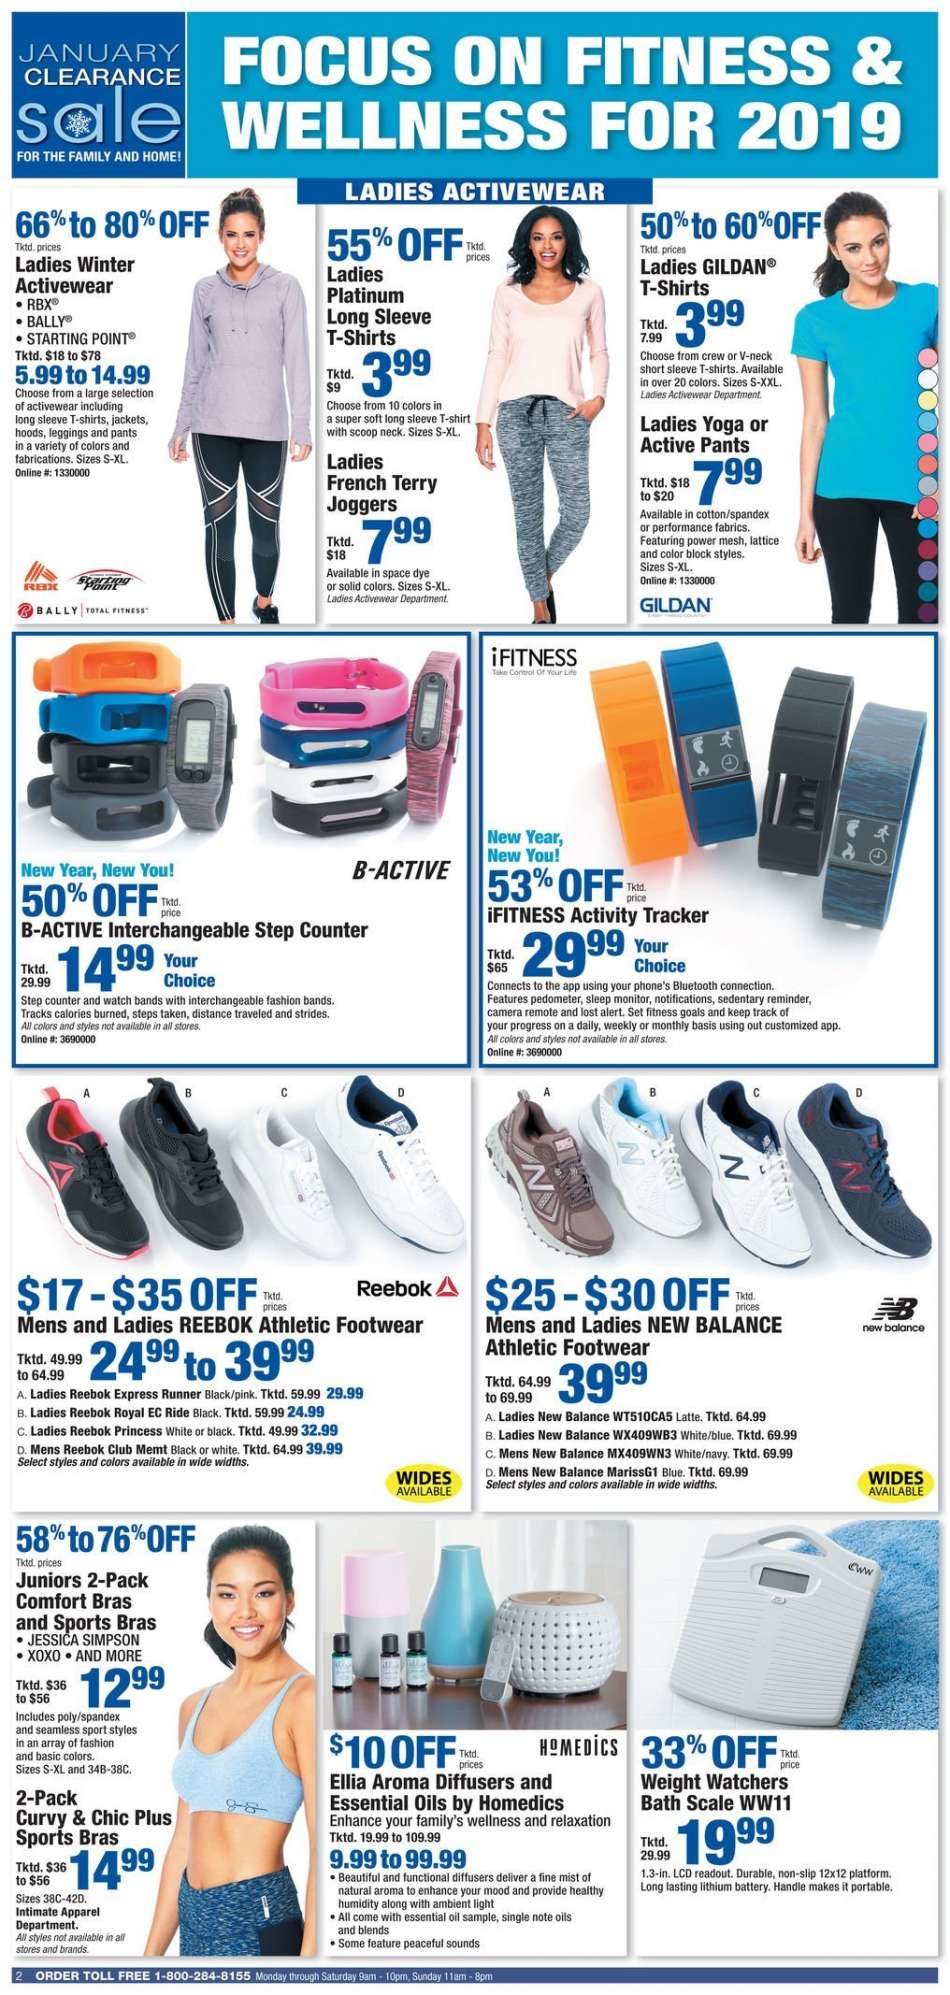 0438ec915baef Boscov's weekly ad / circular 01.27.2019 - 02.03.2019 - NO LONGER VALID